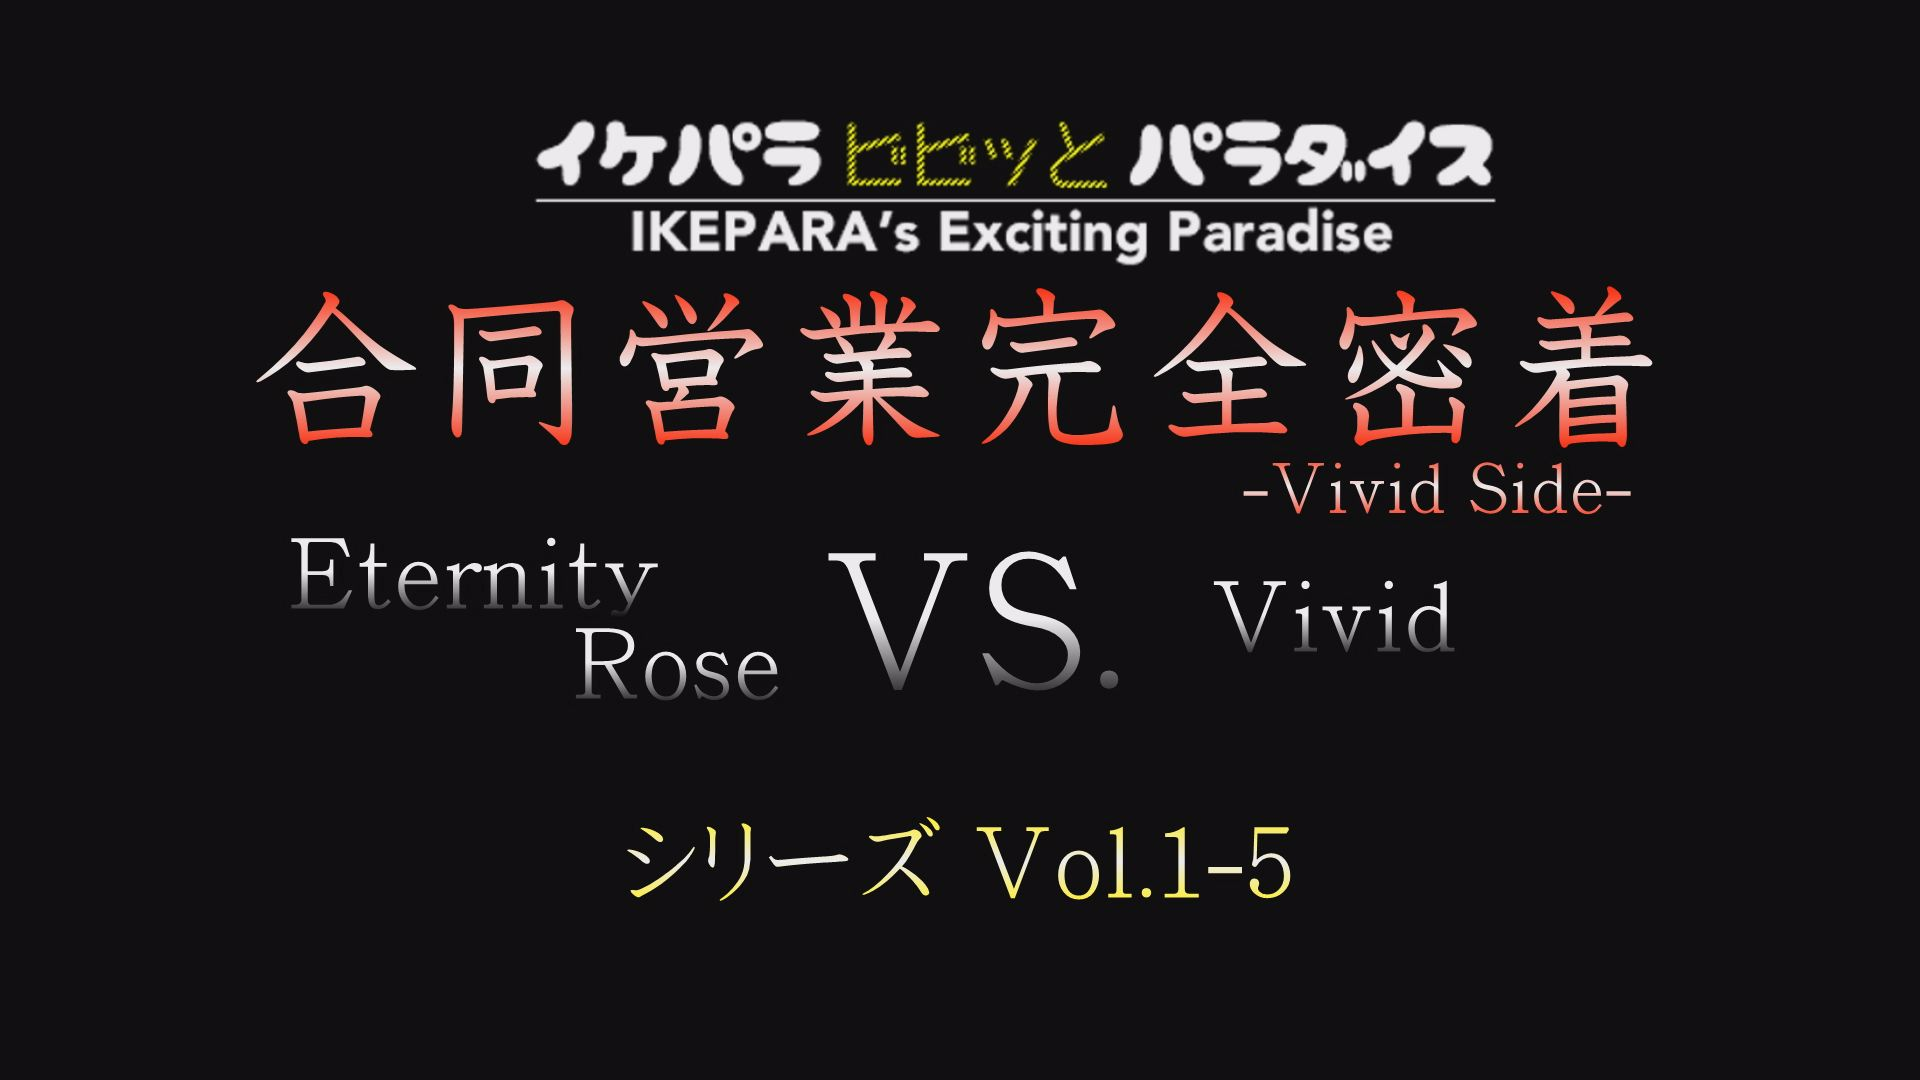 合同営業完全密着!Eternity Rose VS Vivid -Vividside